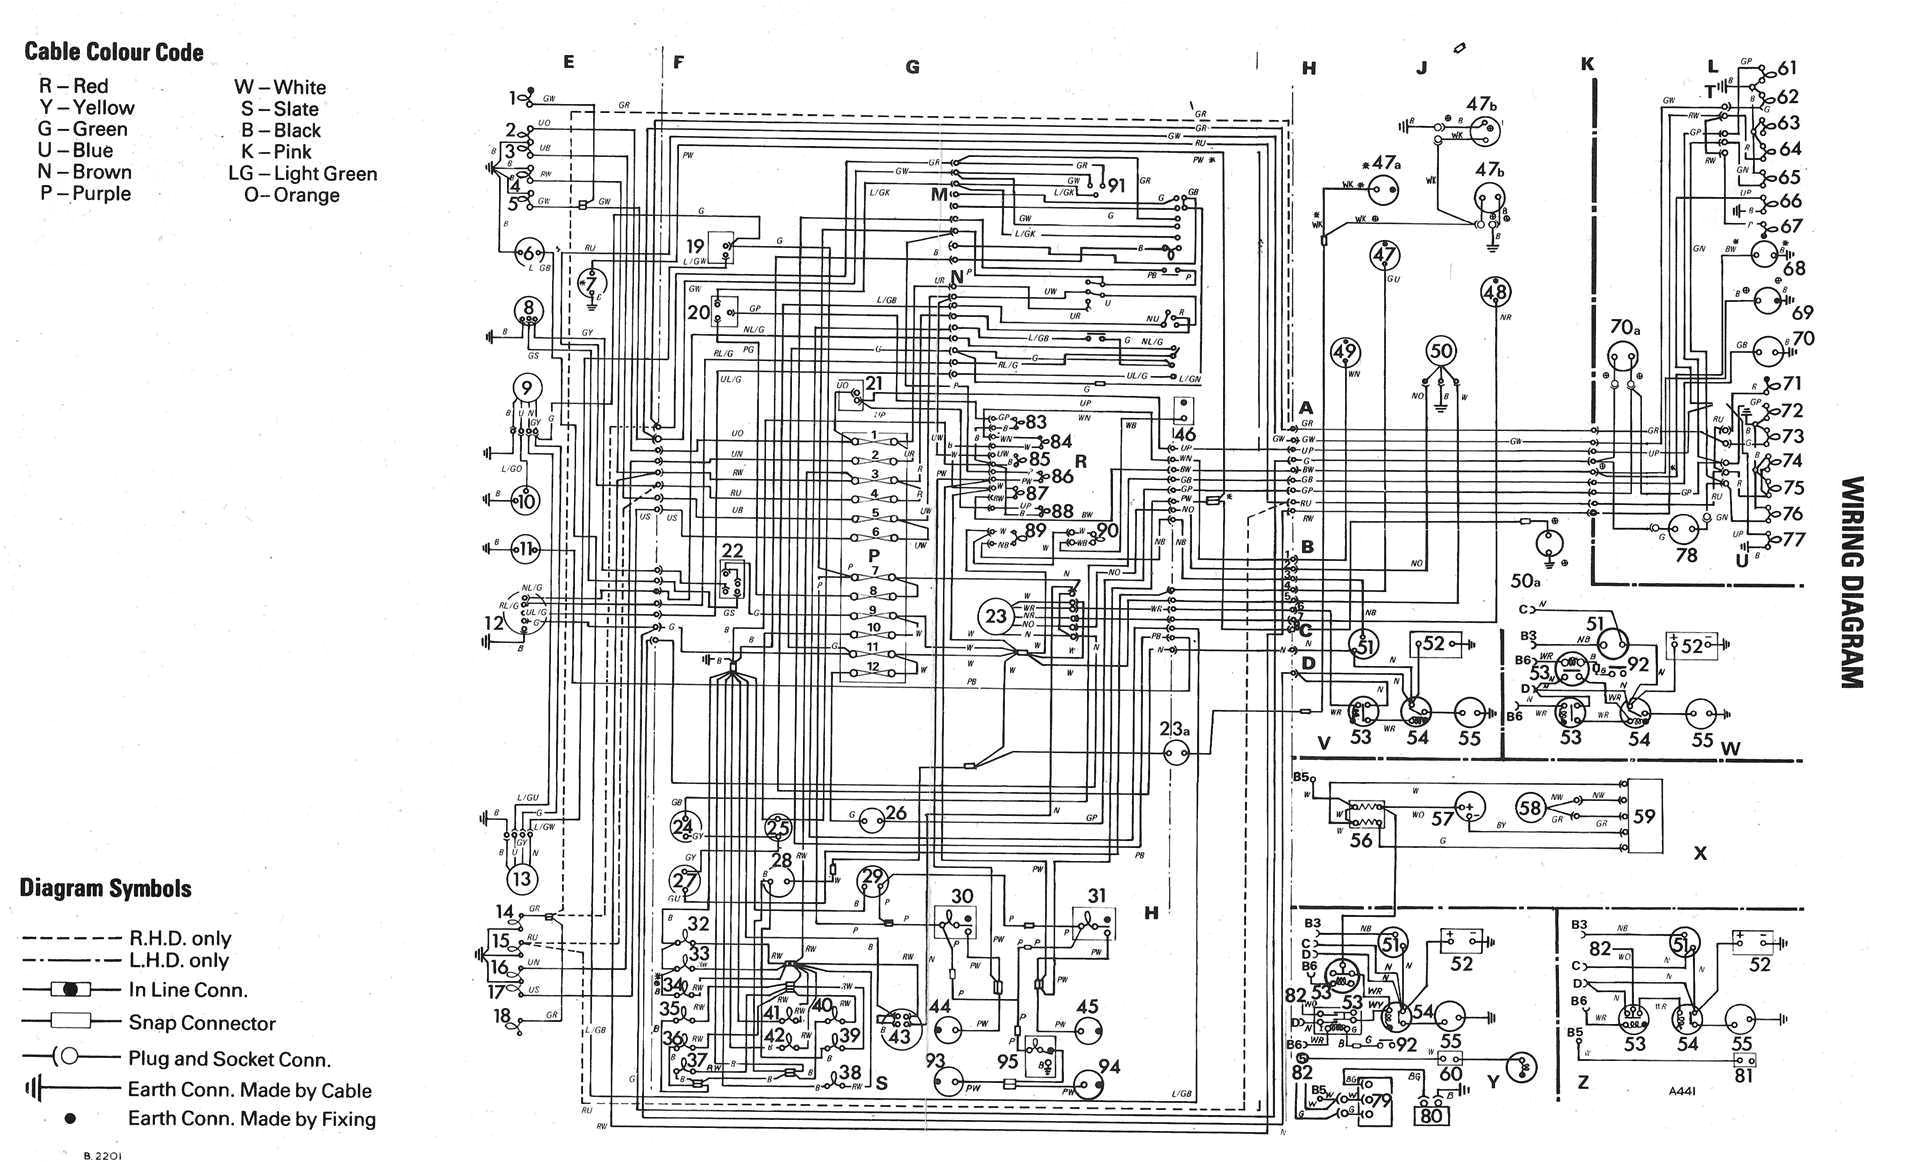 86 vw rabbit wiring diagram blog wiring diagram 86 vw golf wiring diagram